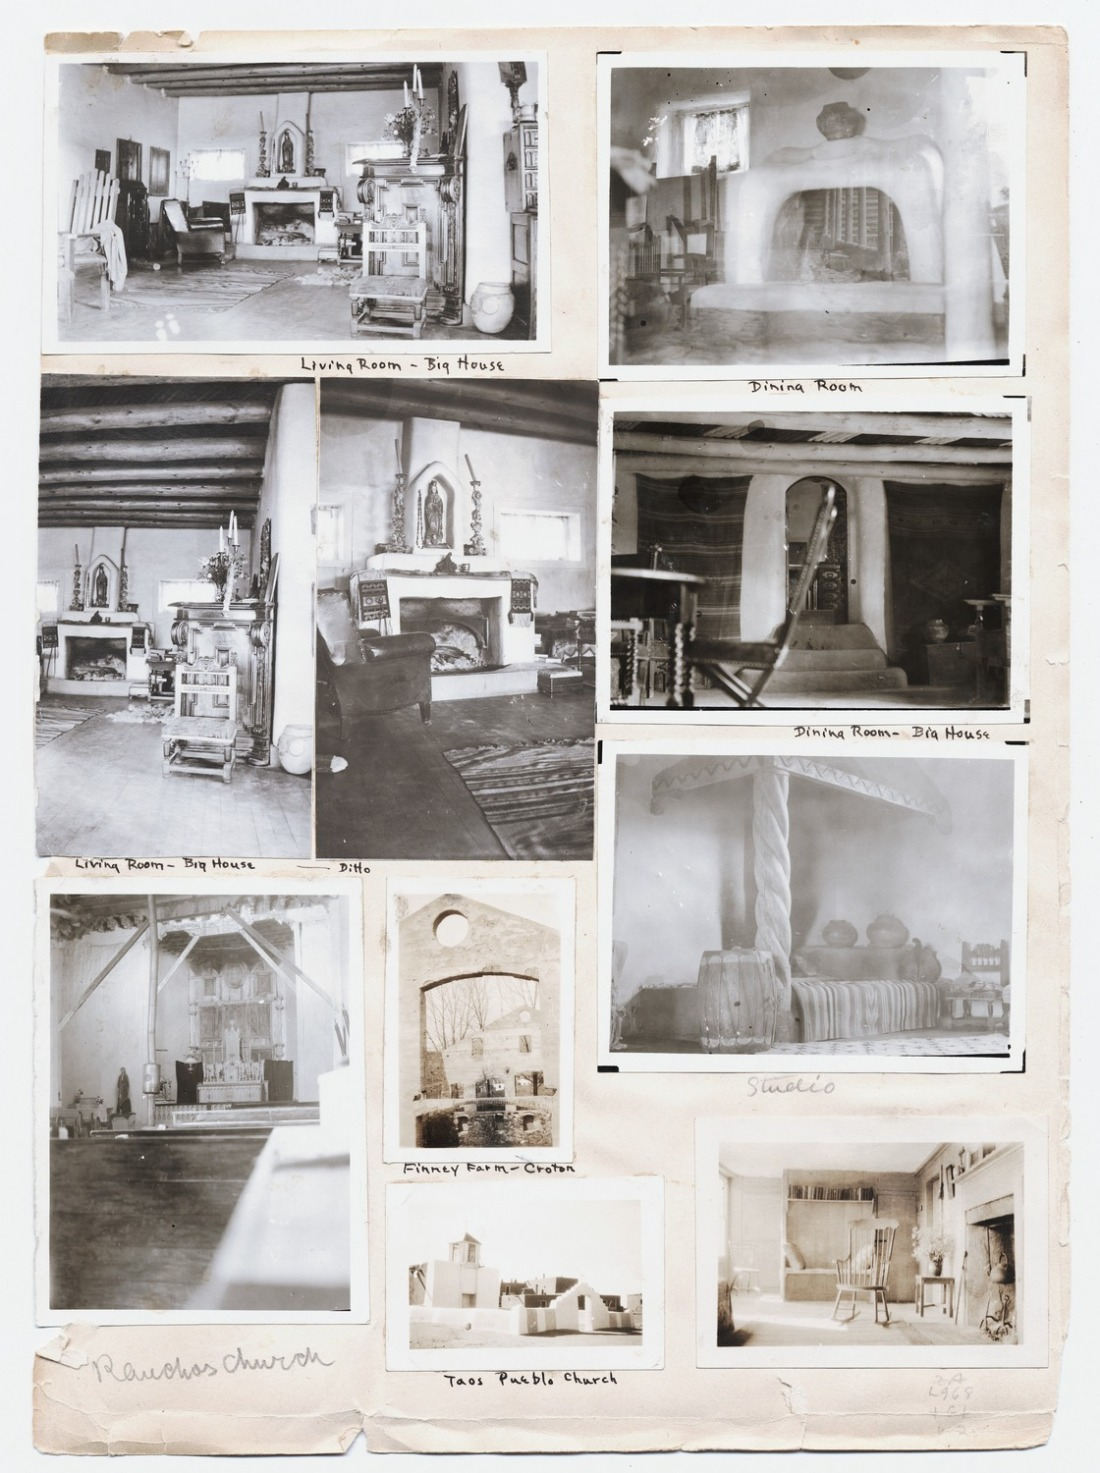 Photographs of Mabel Dodge Luhan's residences mounted on album page.